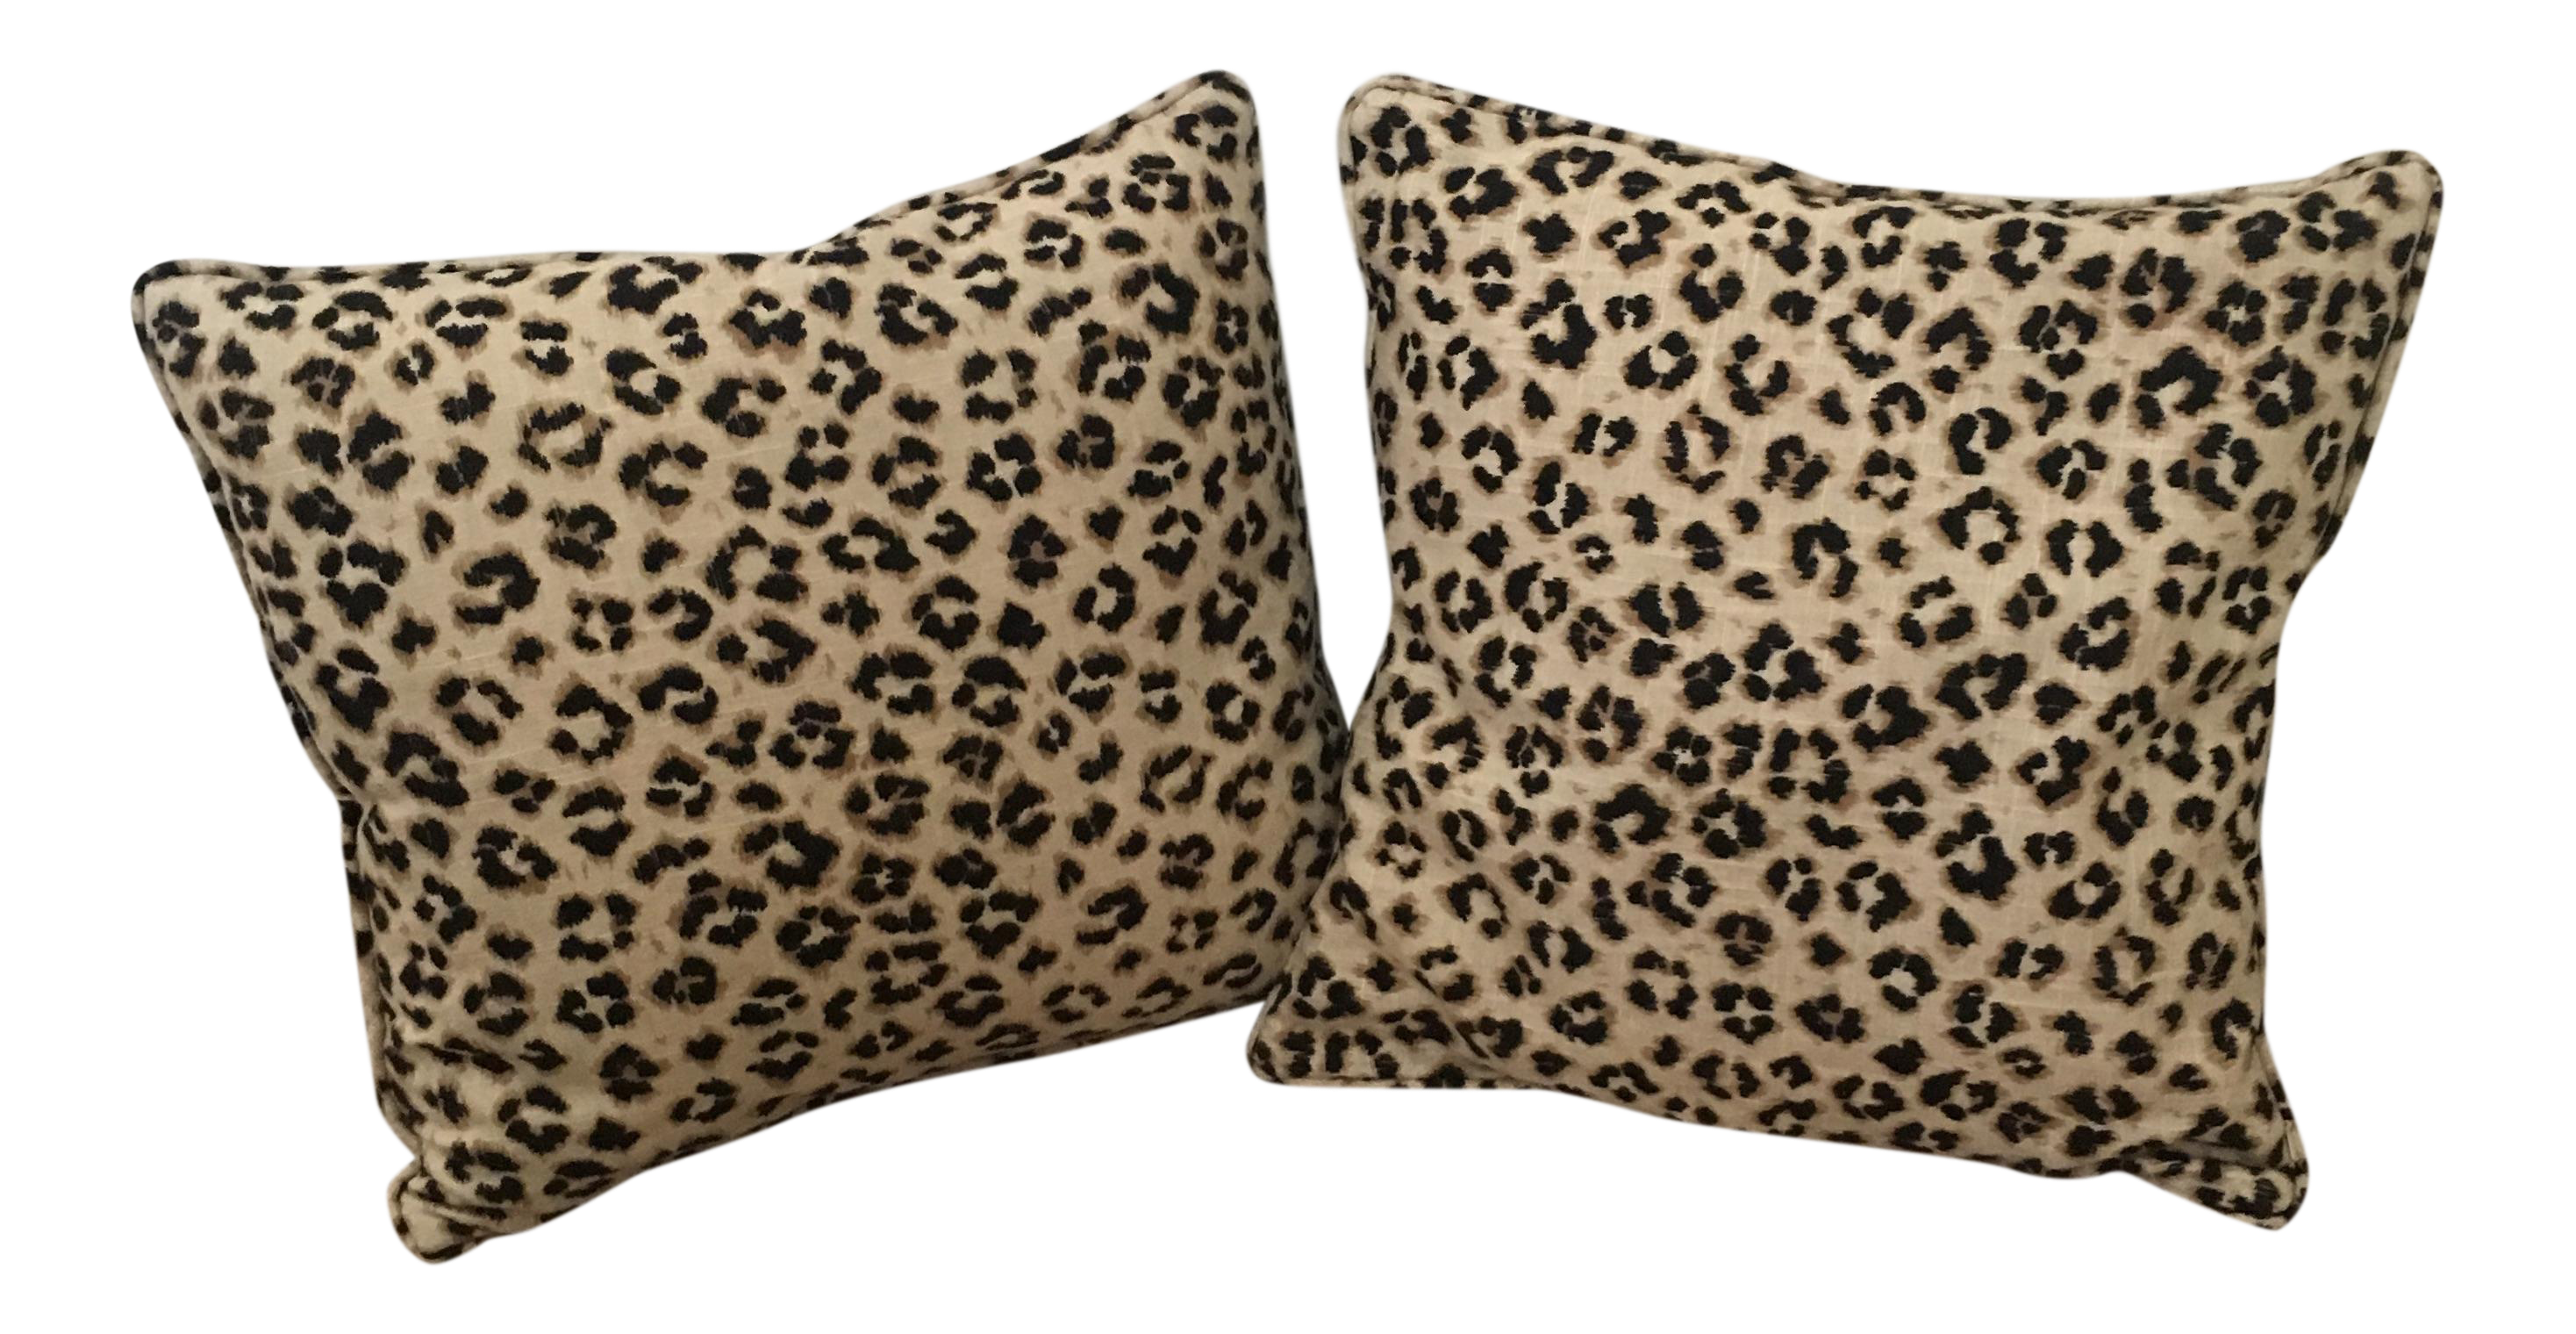 leopard pillow metallic print pillows pin throw cover